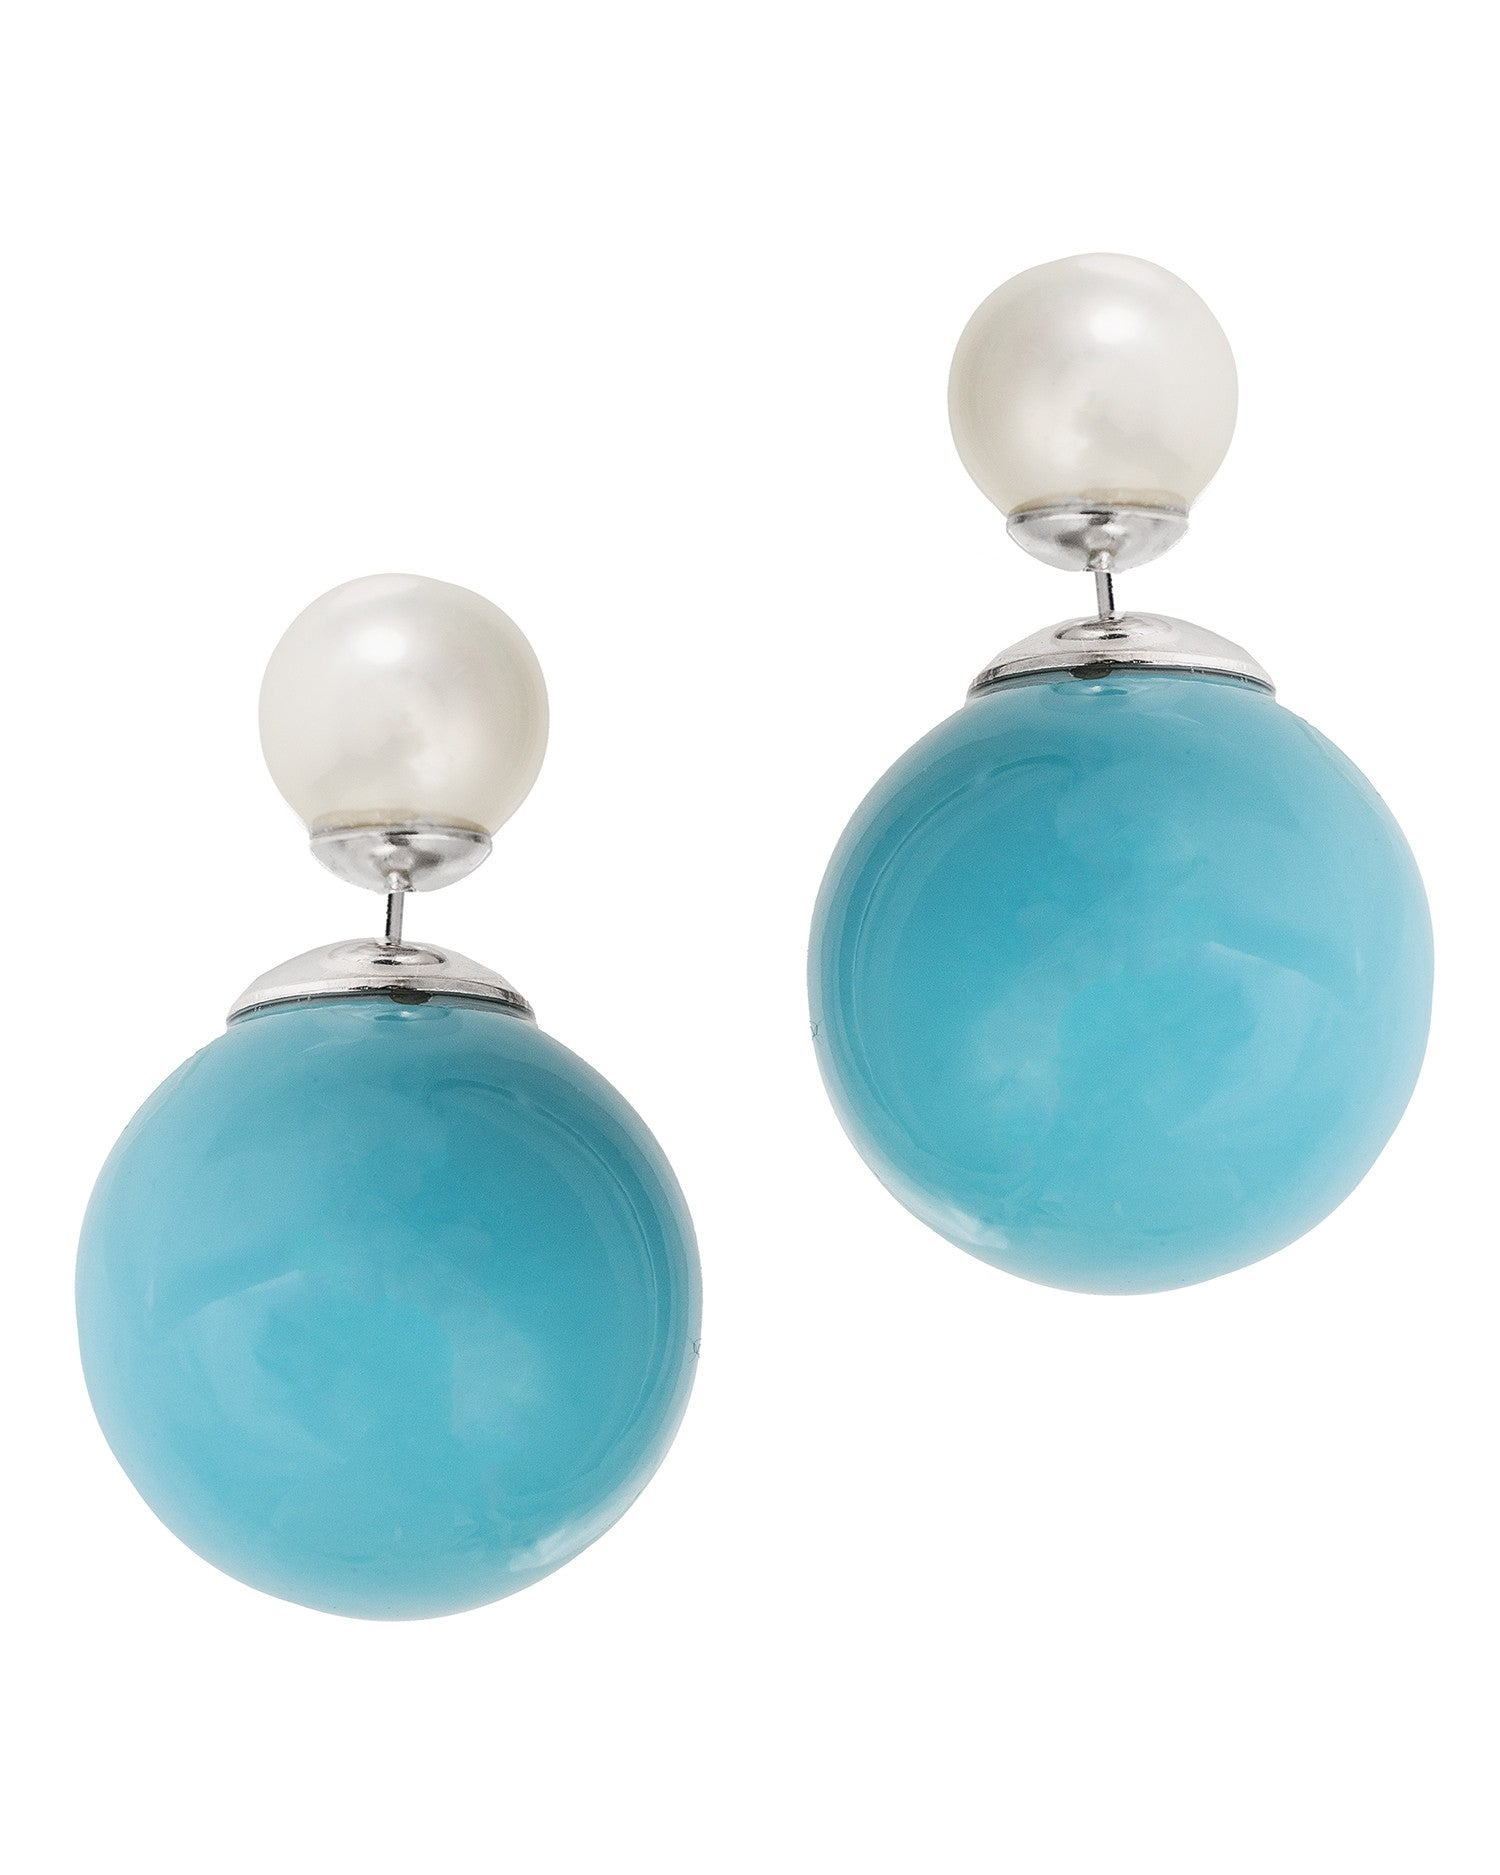 Double Sided Pearl Earrings